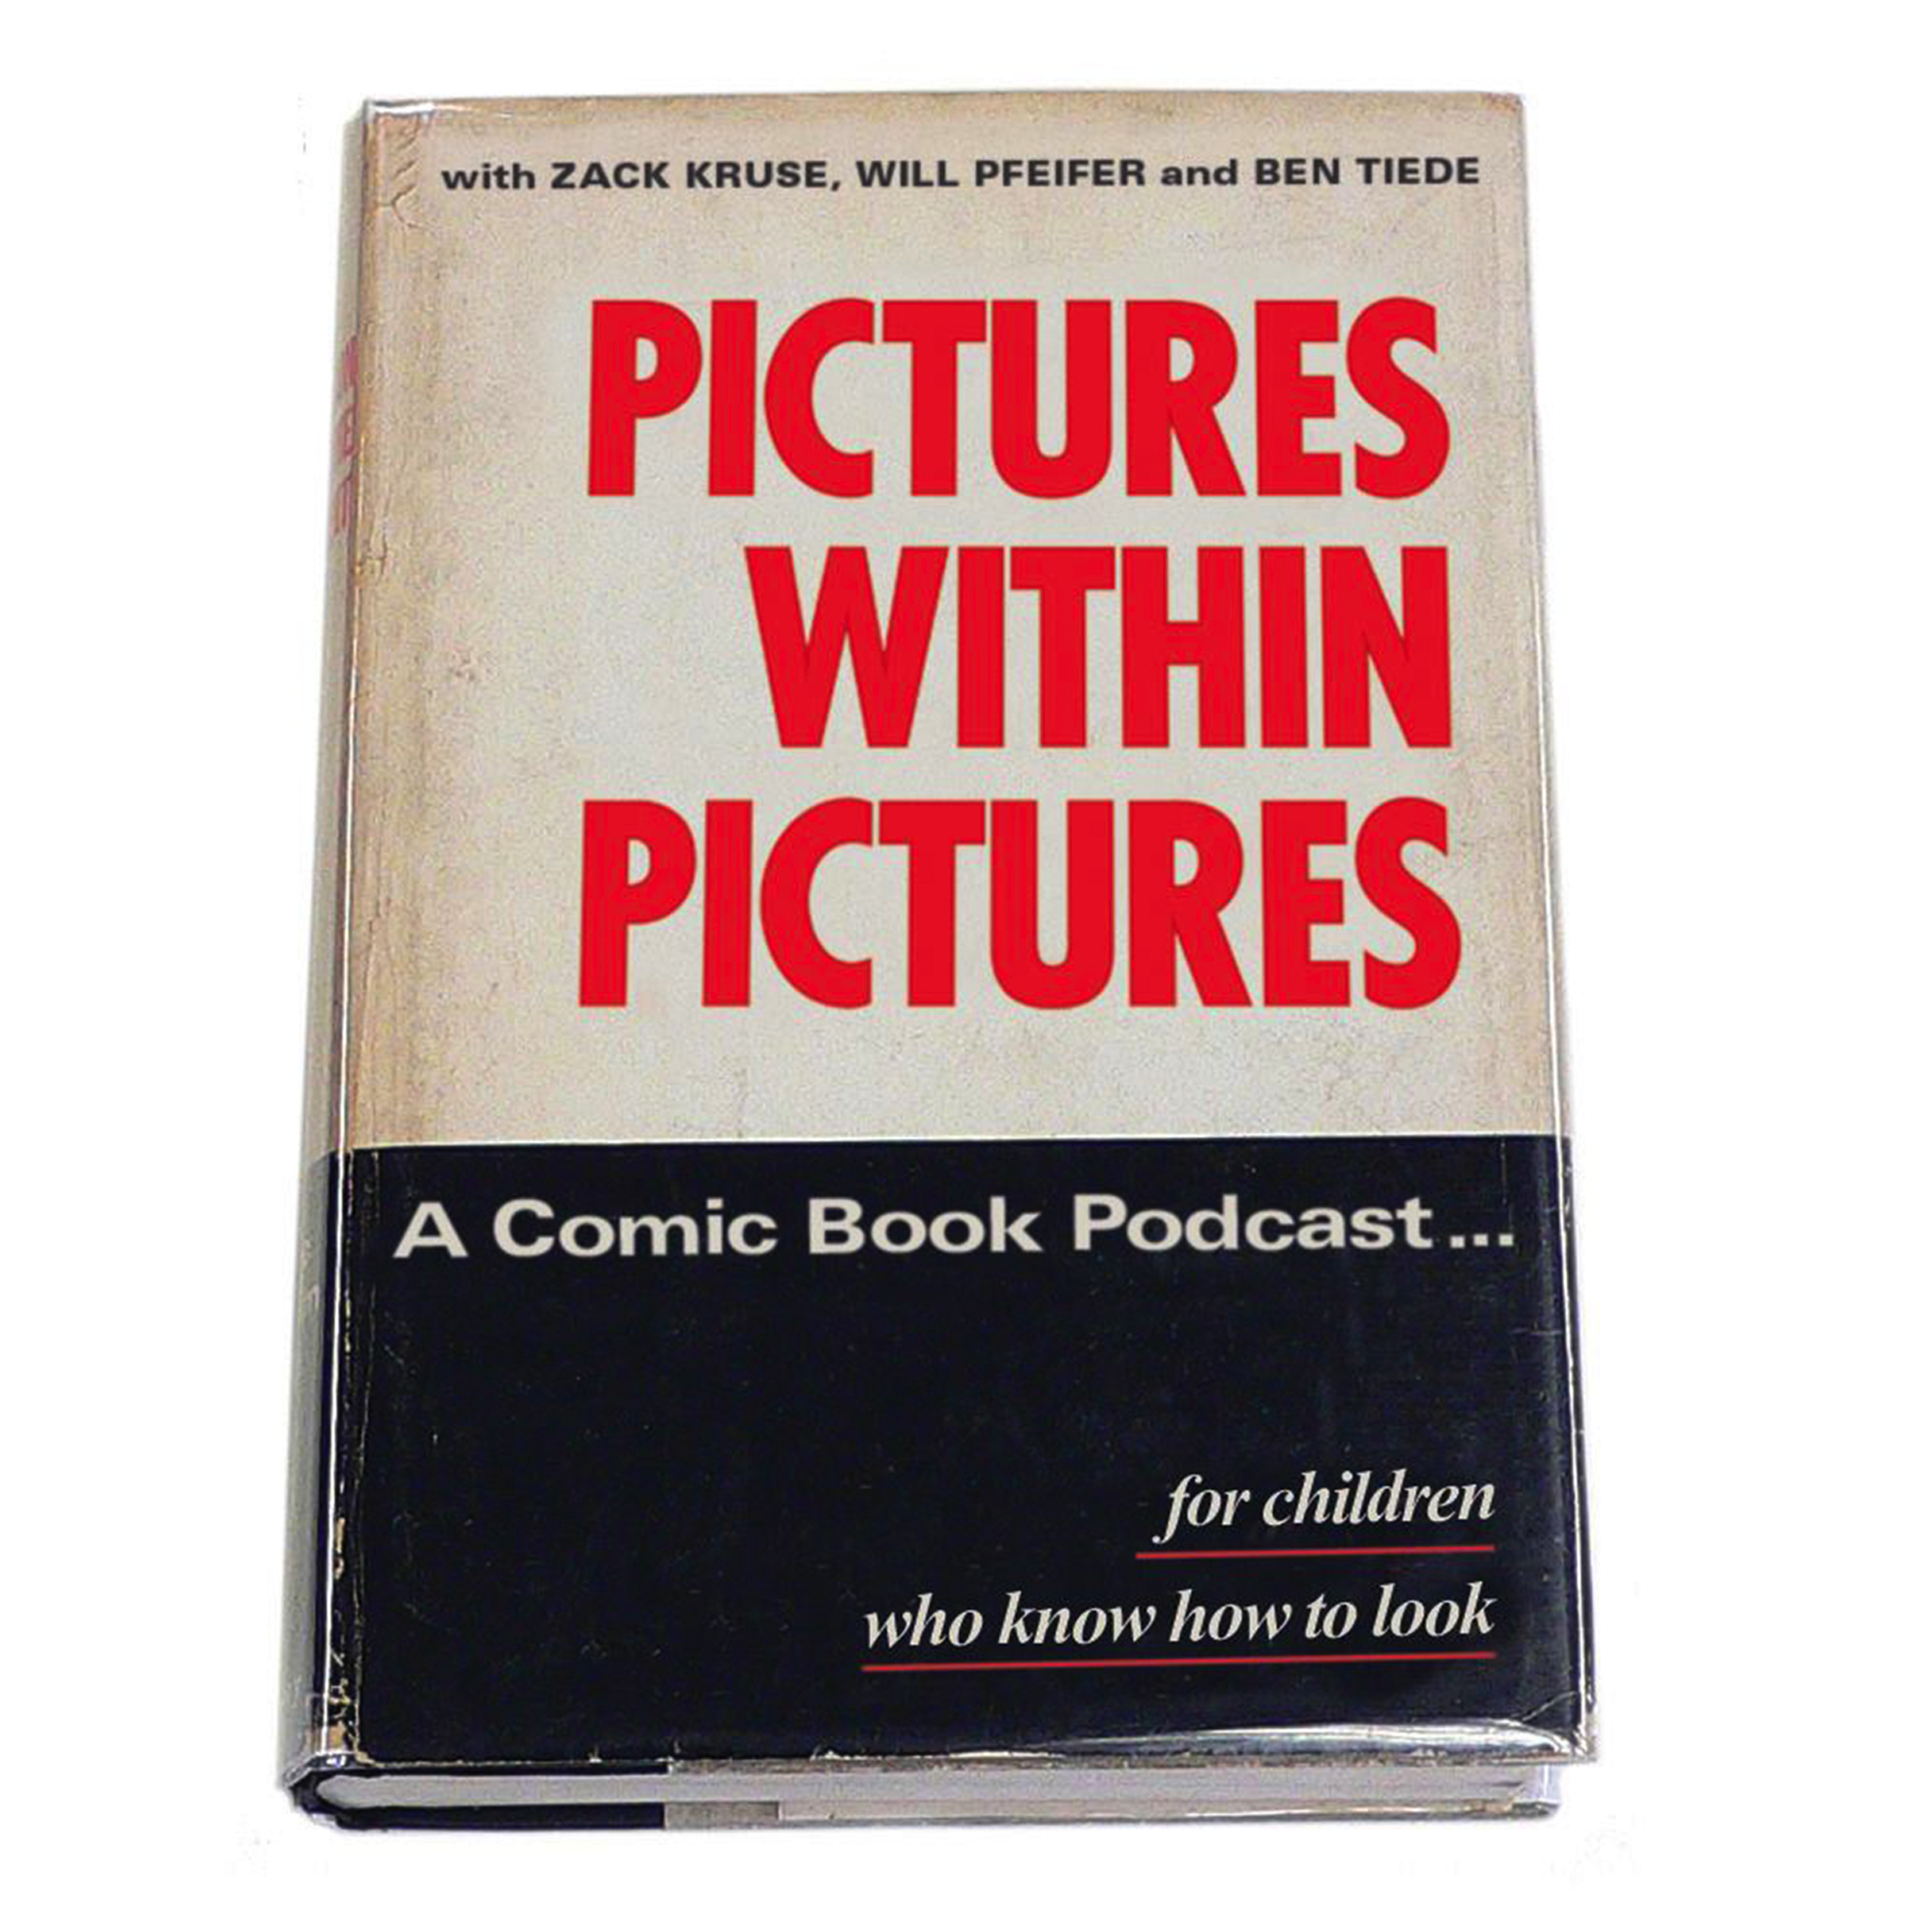 Pictures Within Pictures logo